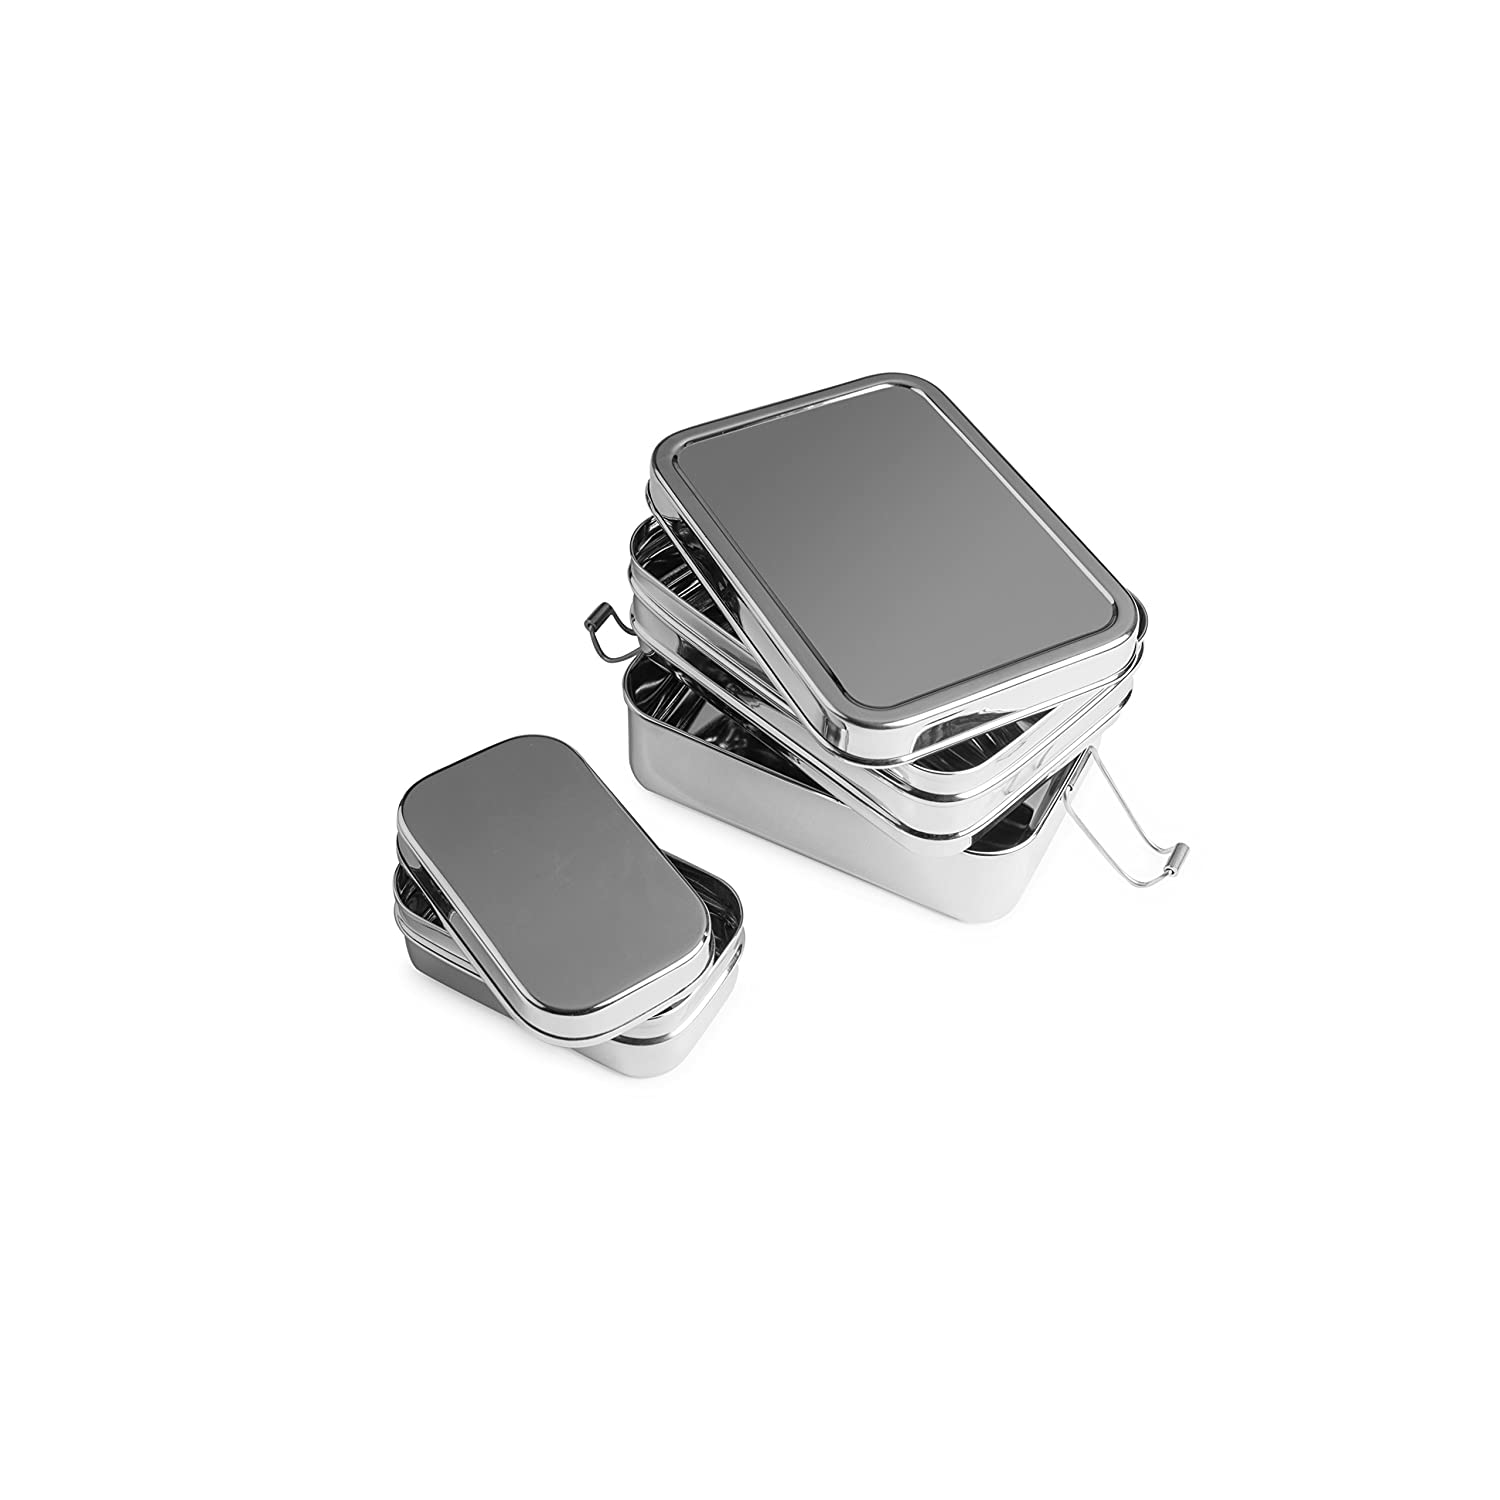 Brotzeit Lunch Box Lunch Boxes 3-in-1Three in One Lunchbox Sandwich Lunch Box 100% BPA Free Safe Closed Stainless Steel Lunch Box Design, Silver, 15.5x 11x 8.4cm pure and green e.U. 9120084850030